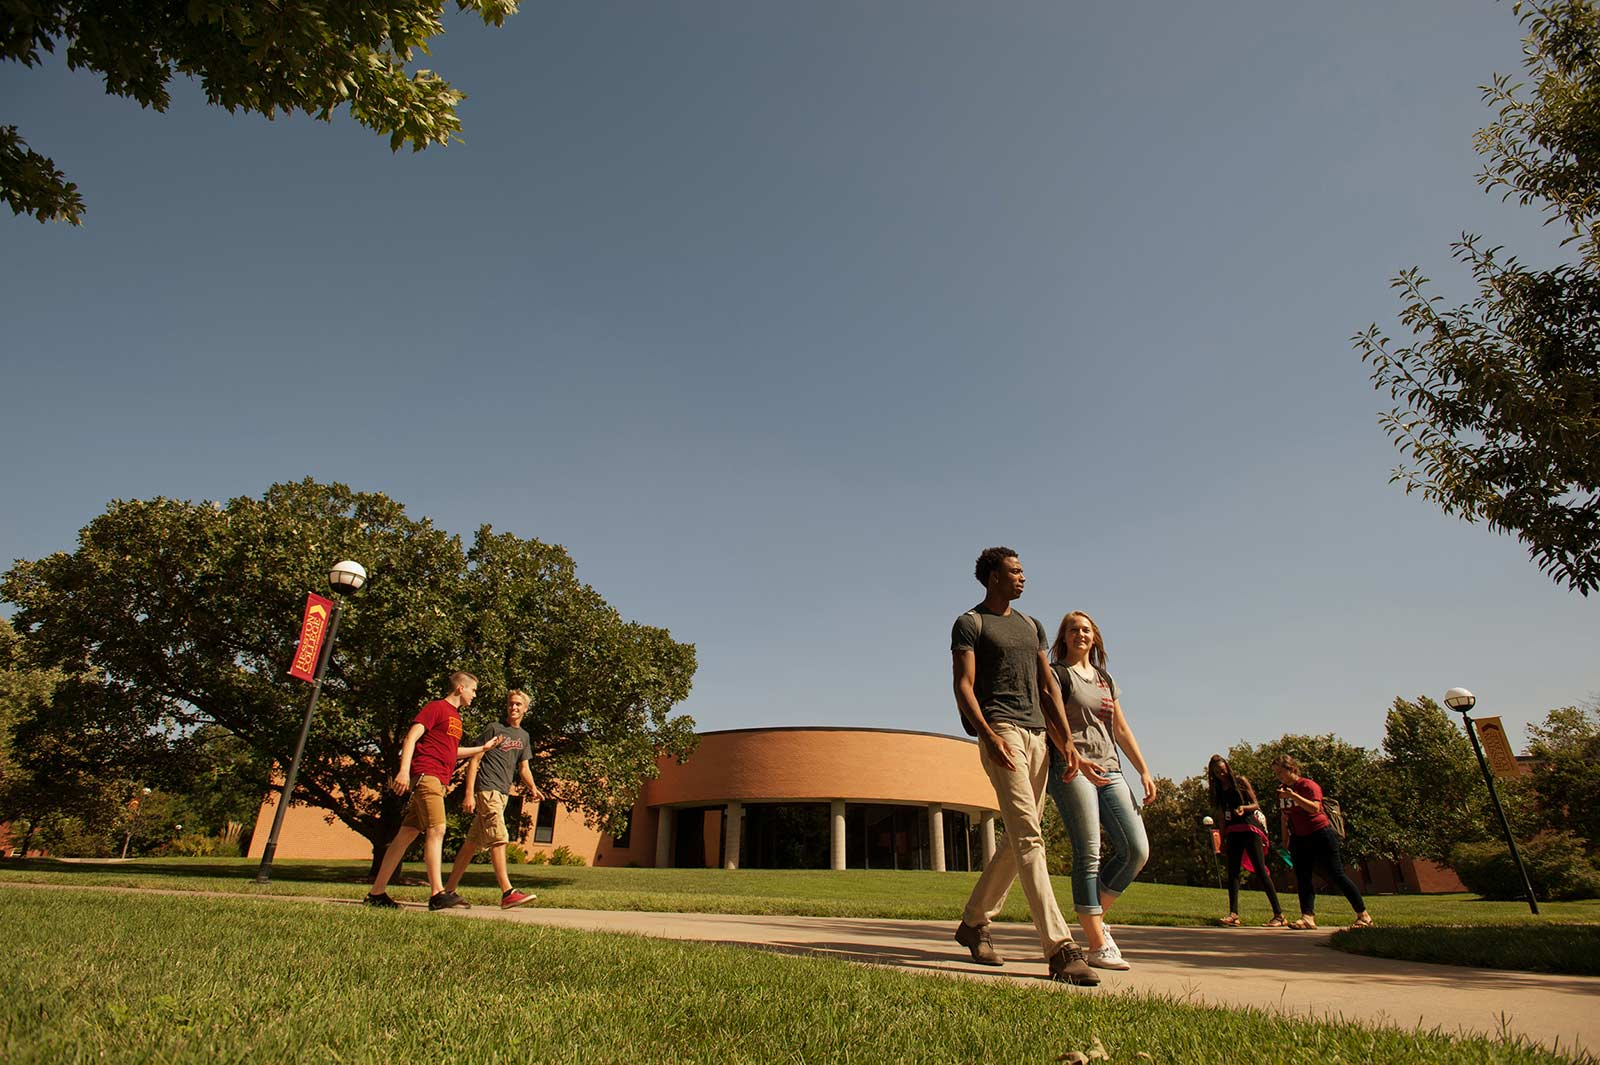 Hesston College campus and students